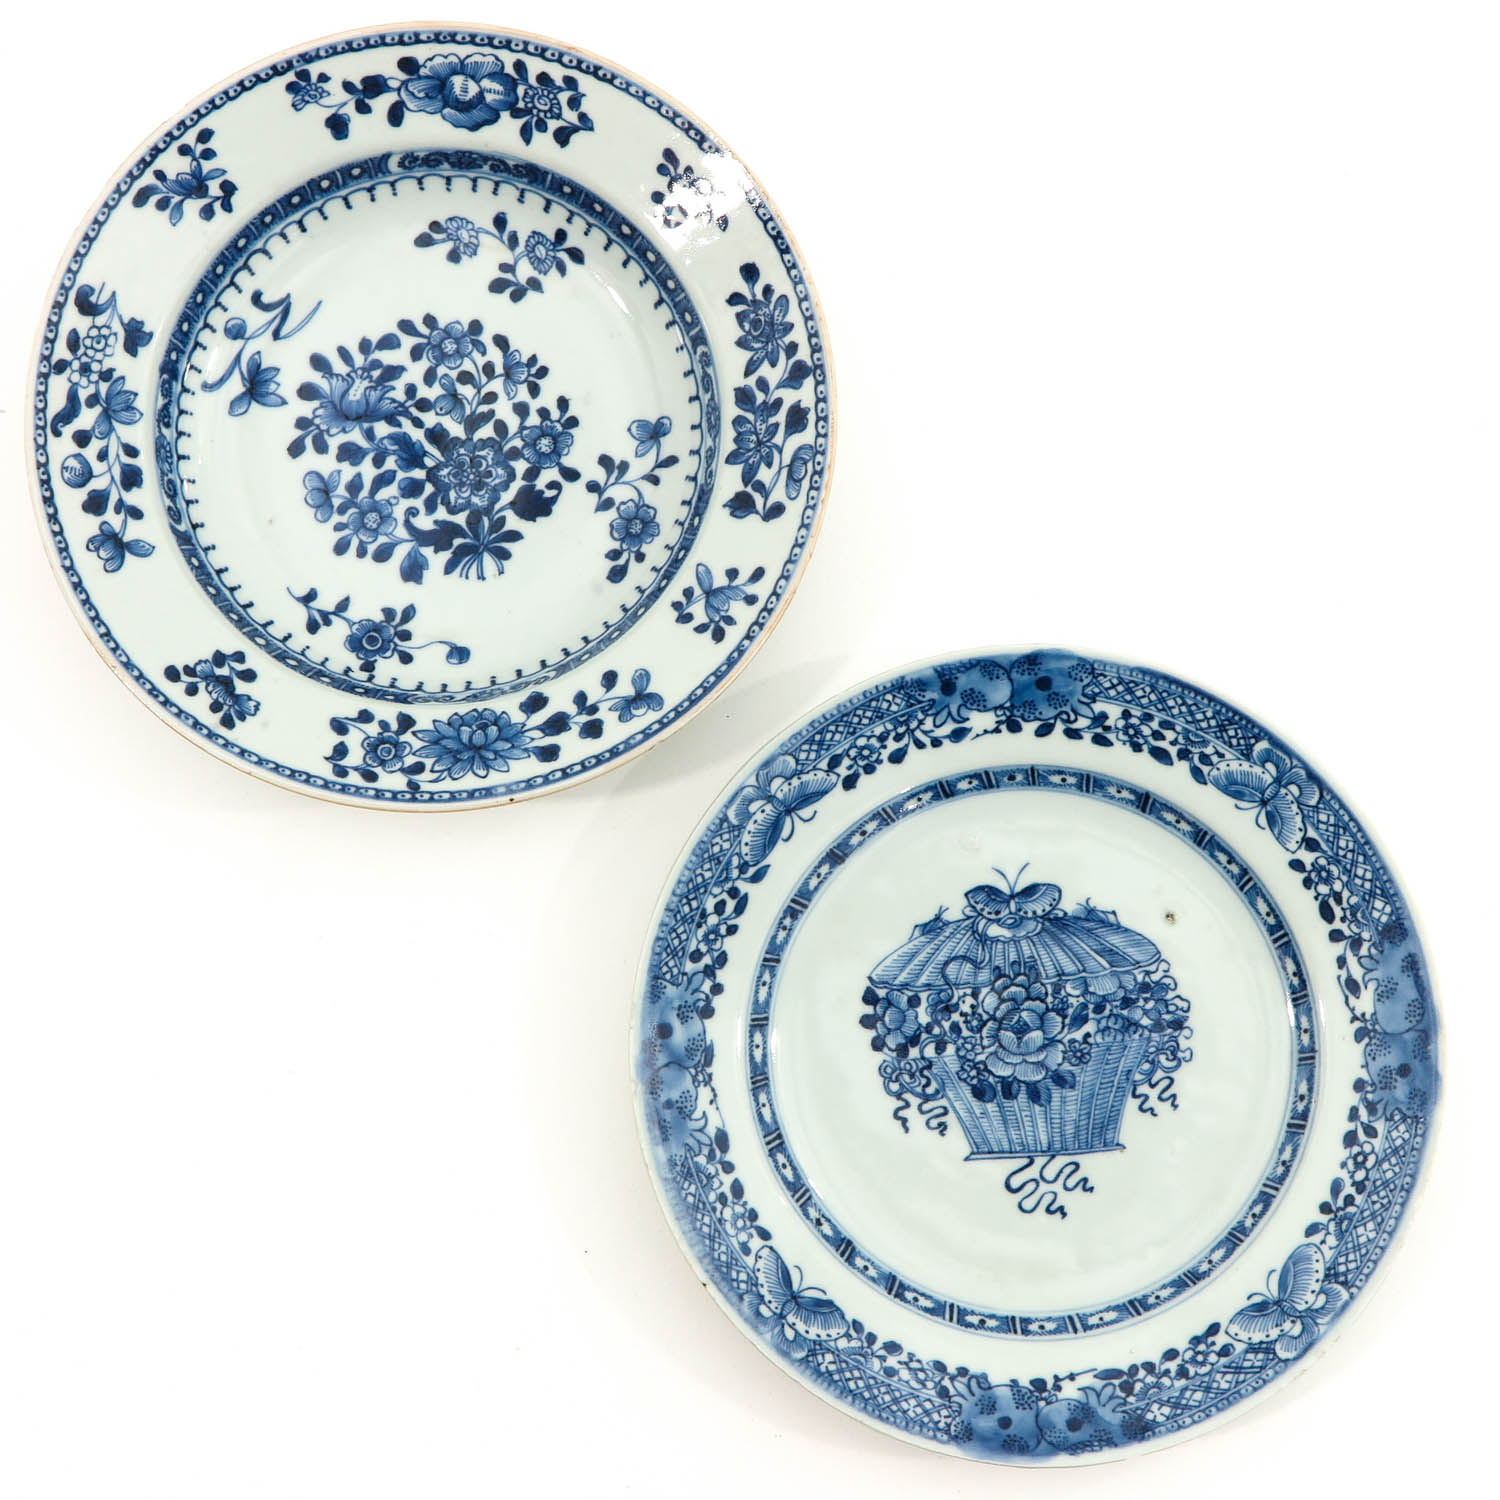 A Collection of 6 Blue and White Plates - Image 5 of 10